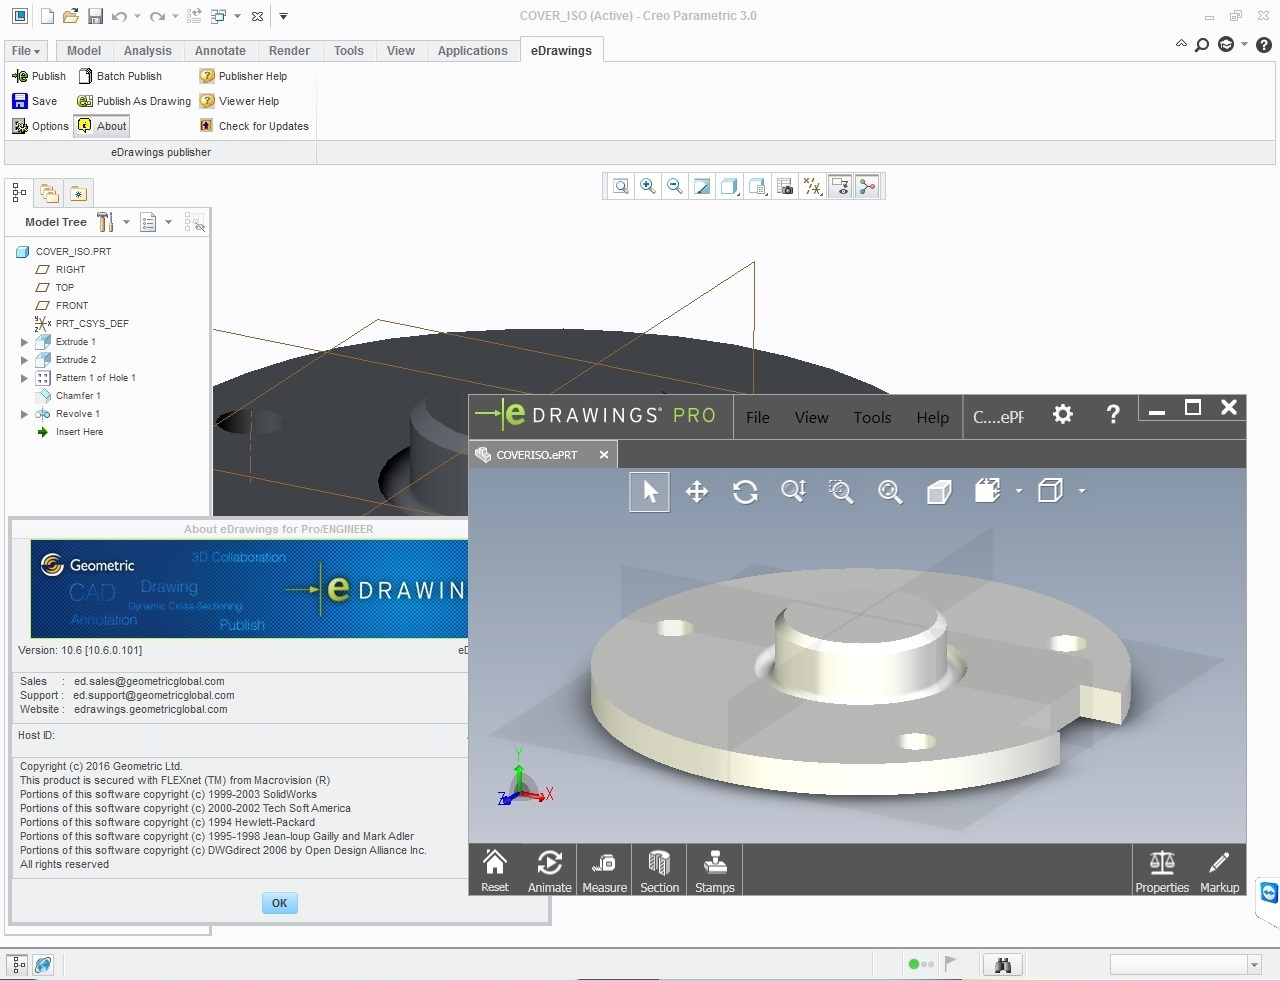 eDrawings Pro 2017 Suite for CREO 4.0